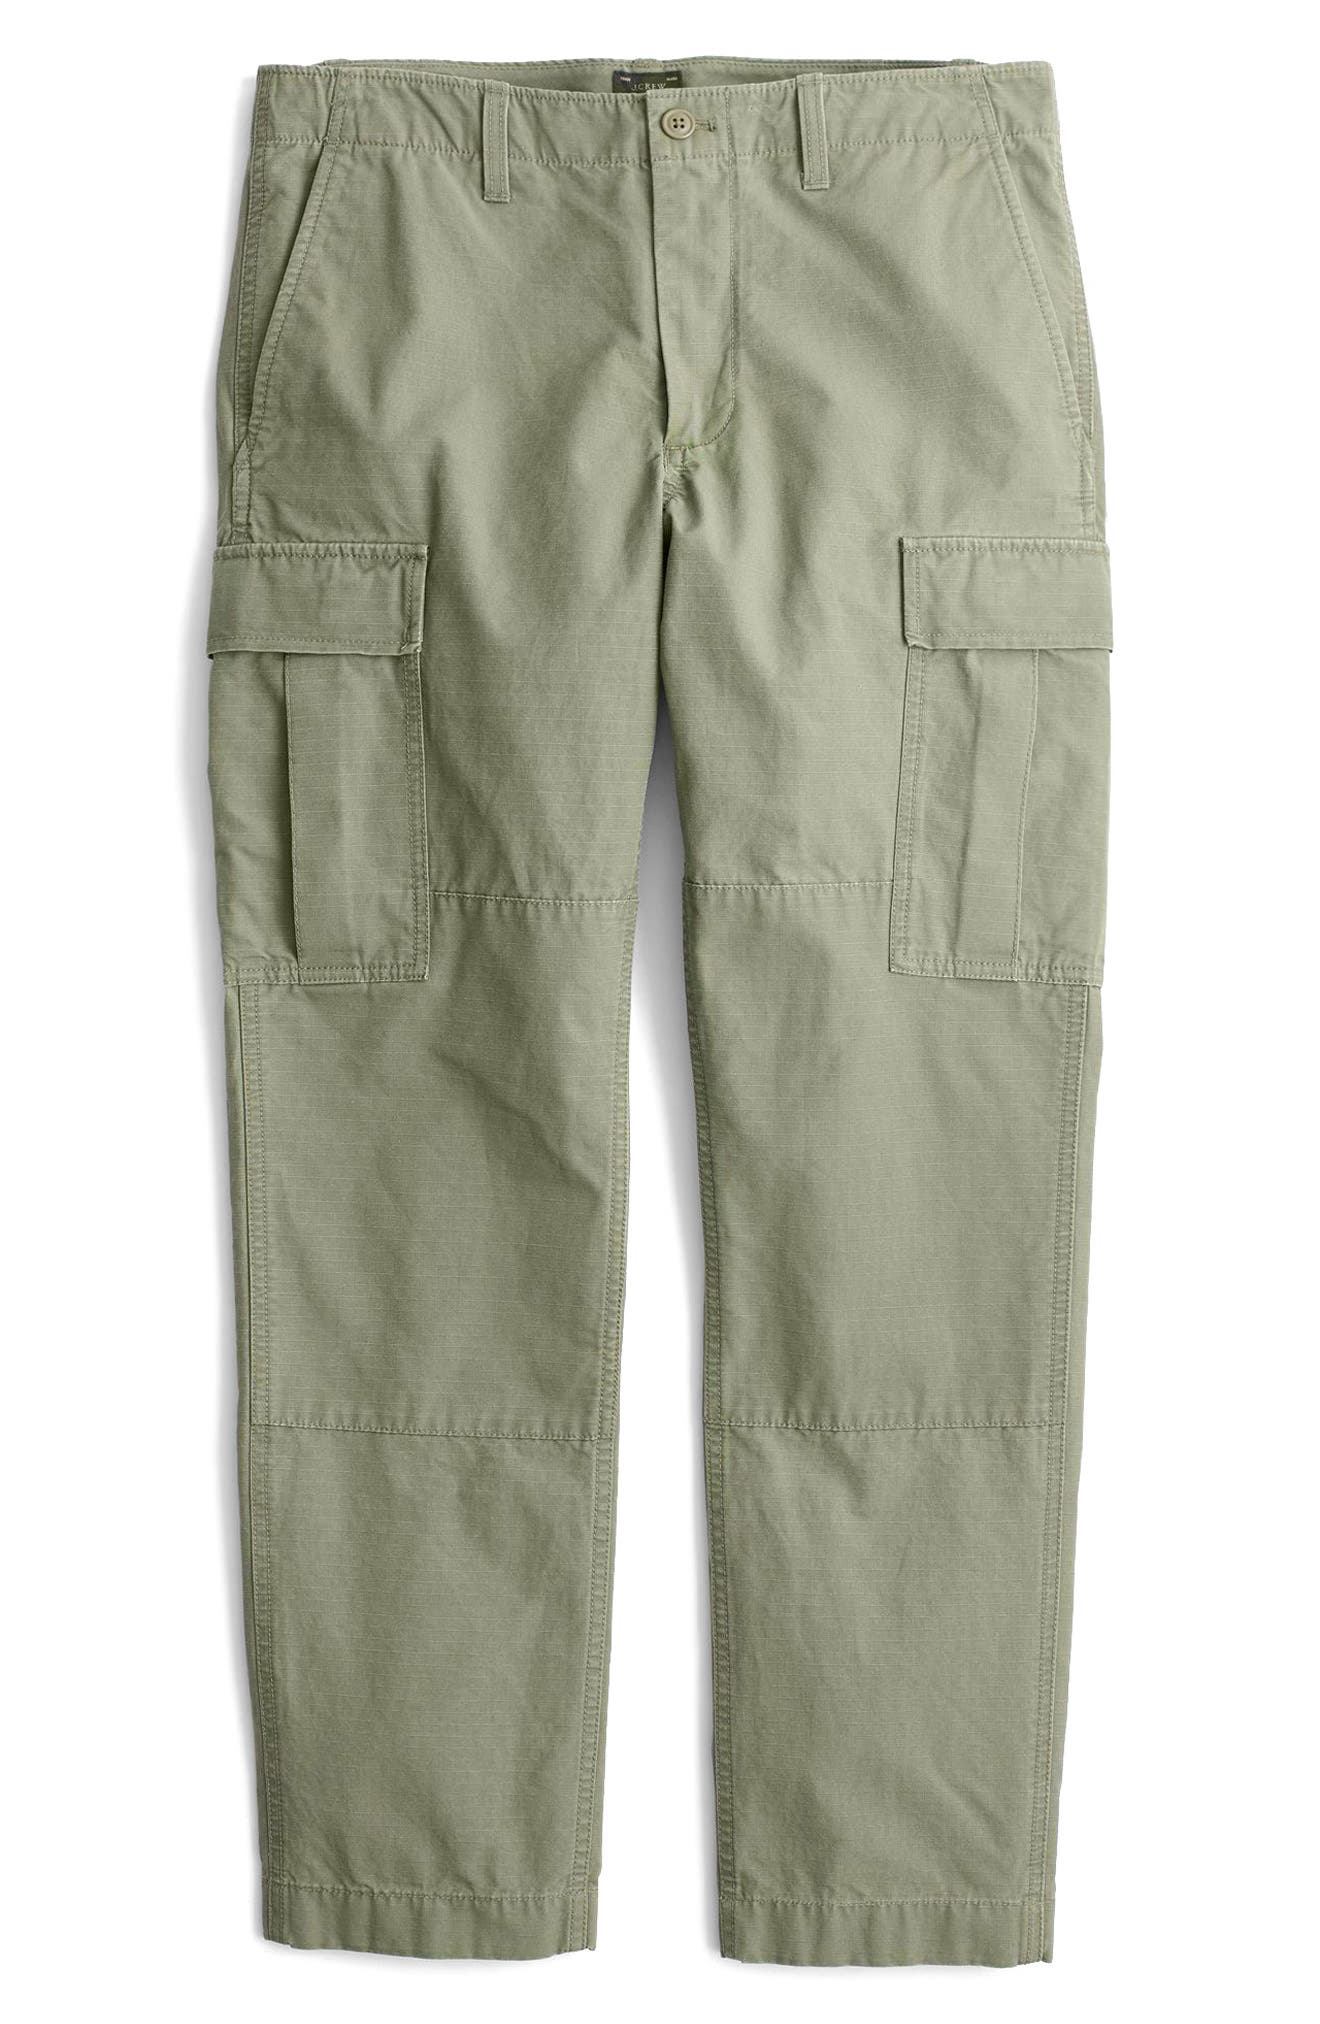 770 Straight Fit Ripstop Cargo Pants,                             Alternate thumbnail 4, color,                             300